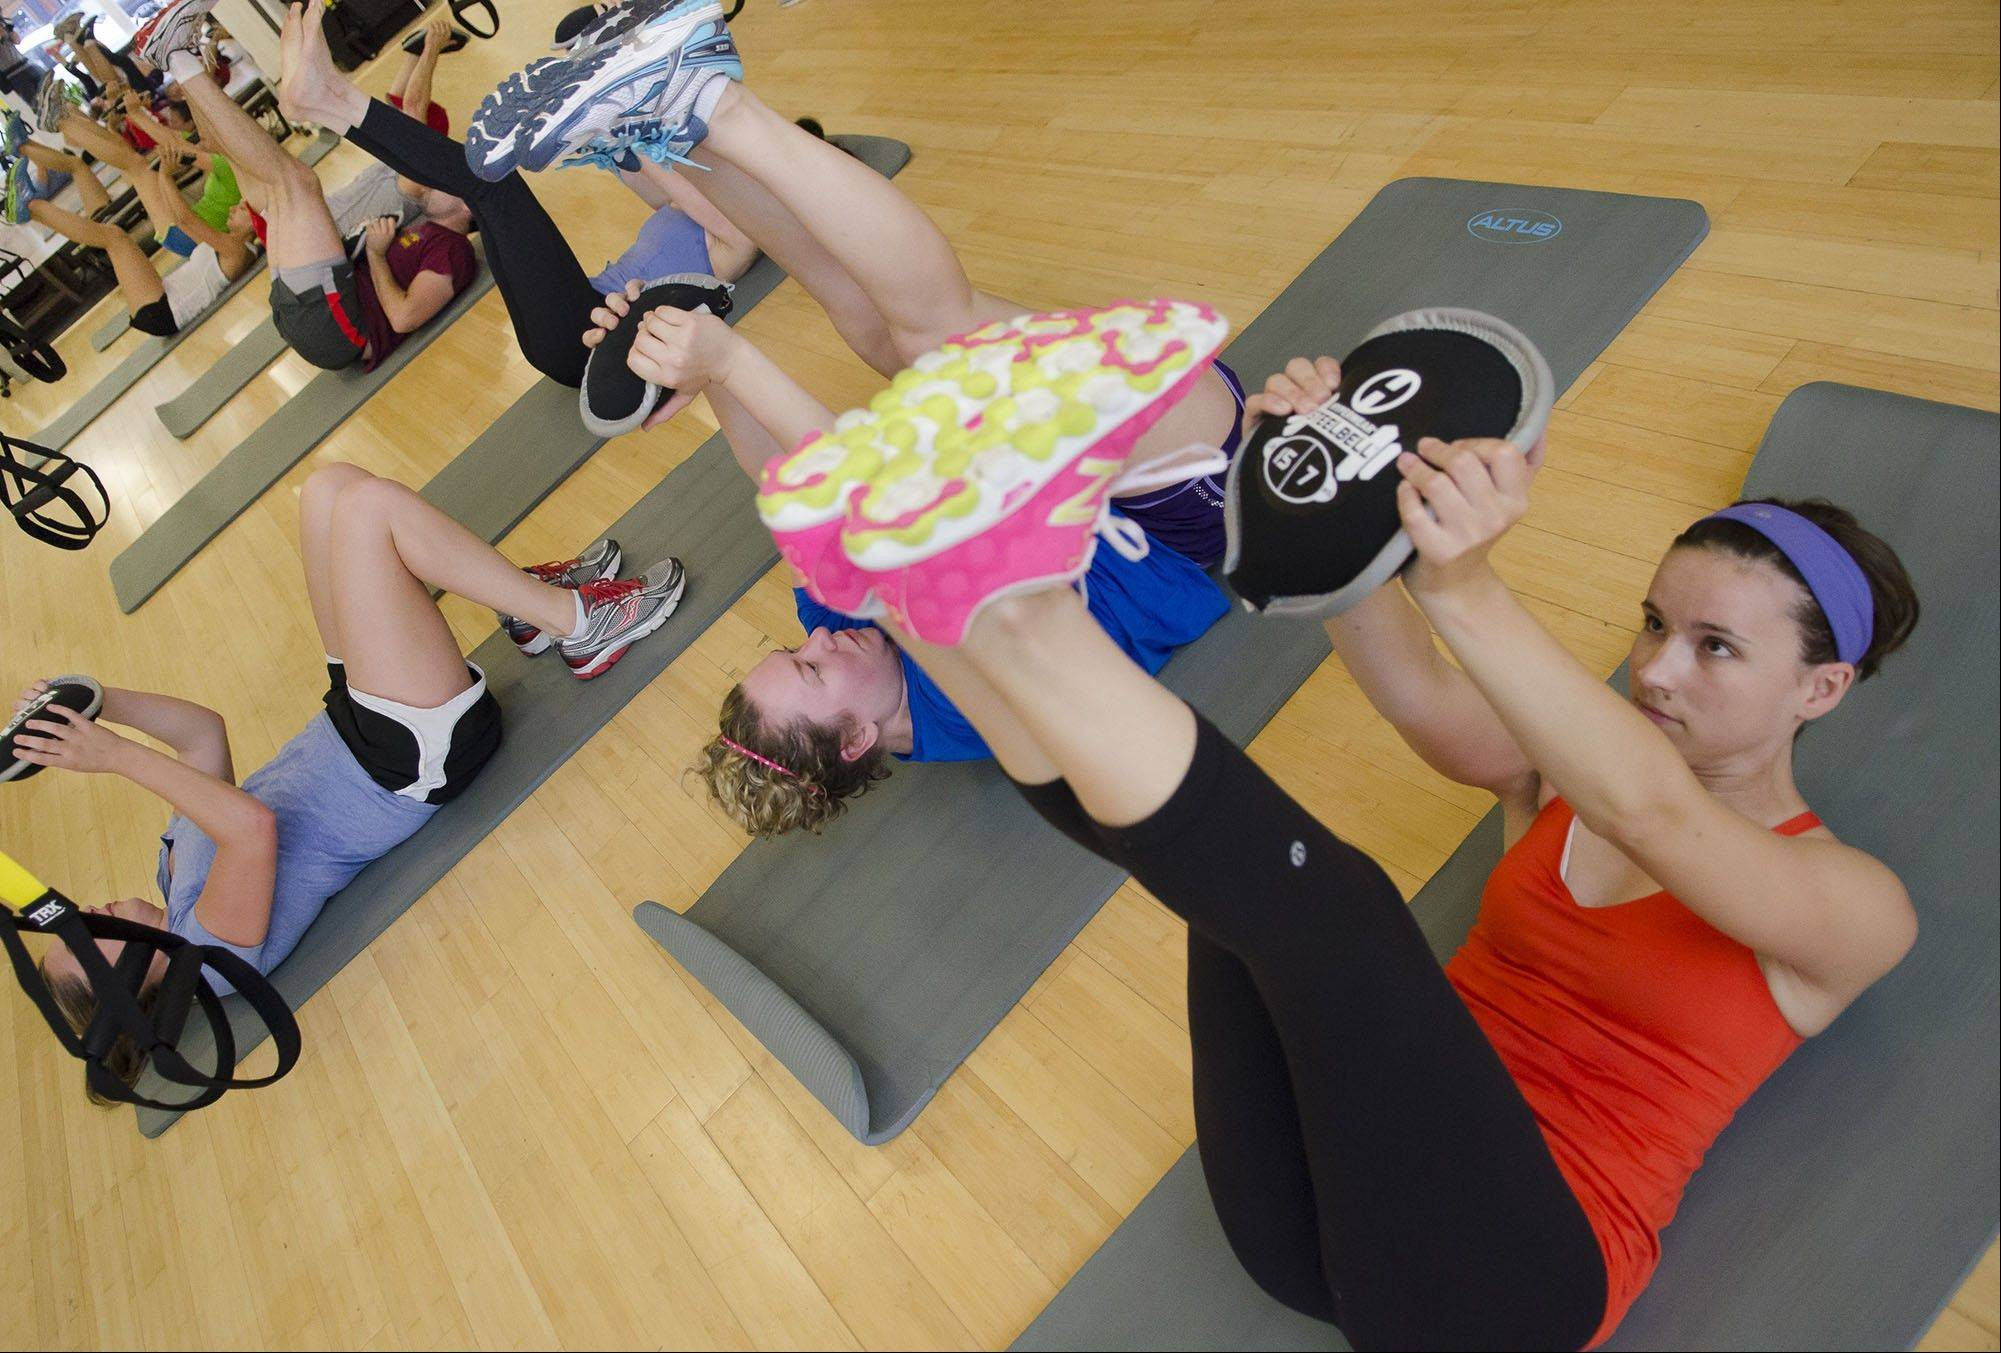 Versatile weights known as SteelBells, neoprene discs stuffed with steel shot, are turning gym goers into disc jockeys.